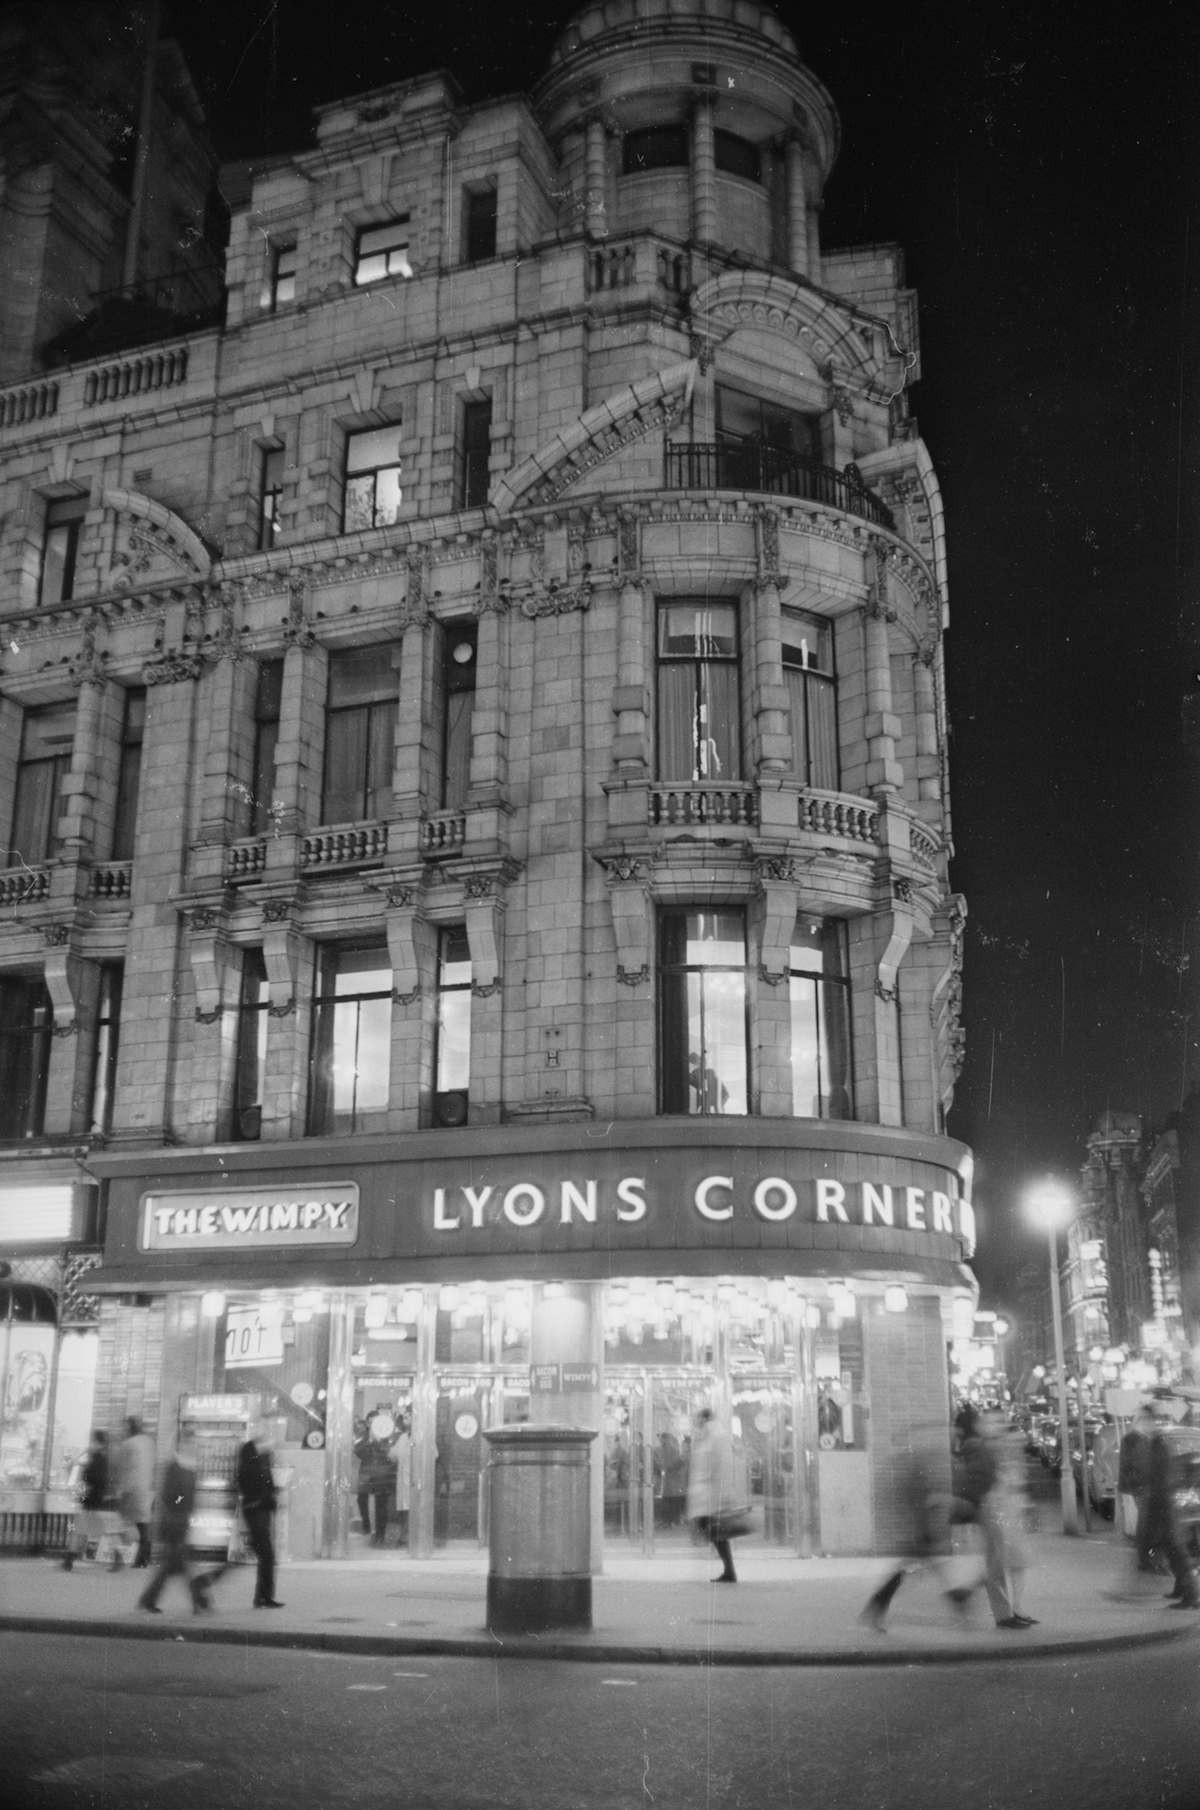 28th November 1966: The Lyons Corner House on Coventry Street and Rupert Street in Piccadilly, London. It has been home to the first ever Wimpy Bar since 1954. (Photo by Les Lee/Express/Getty Images)